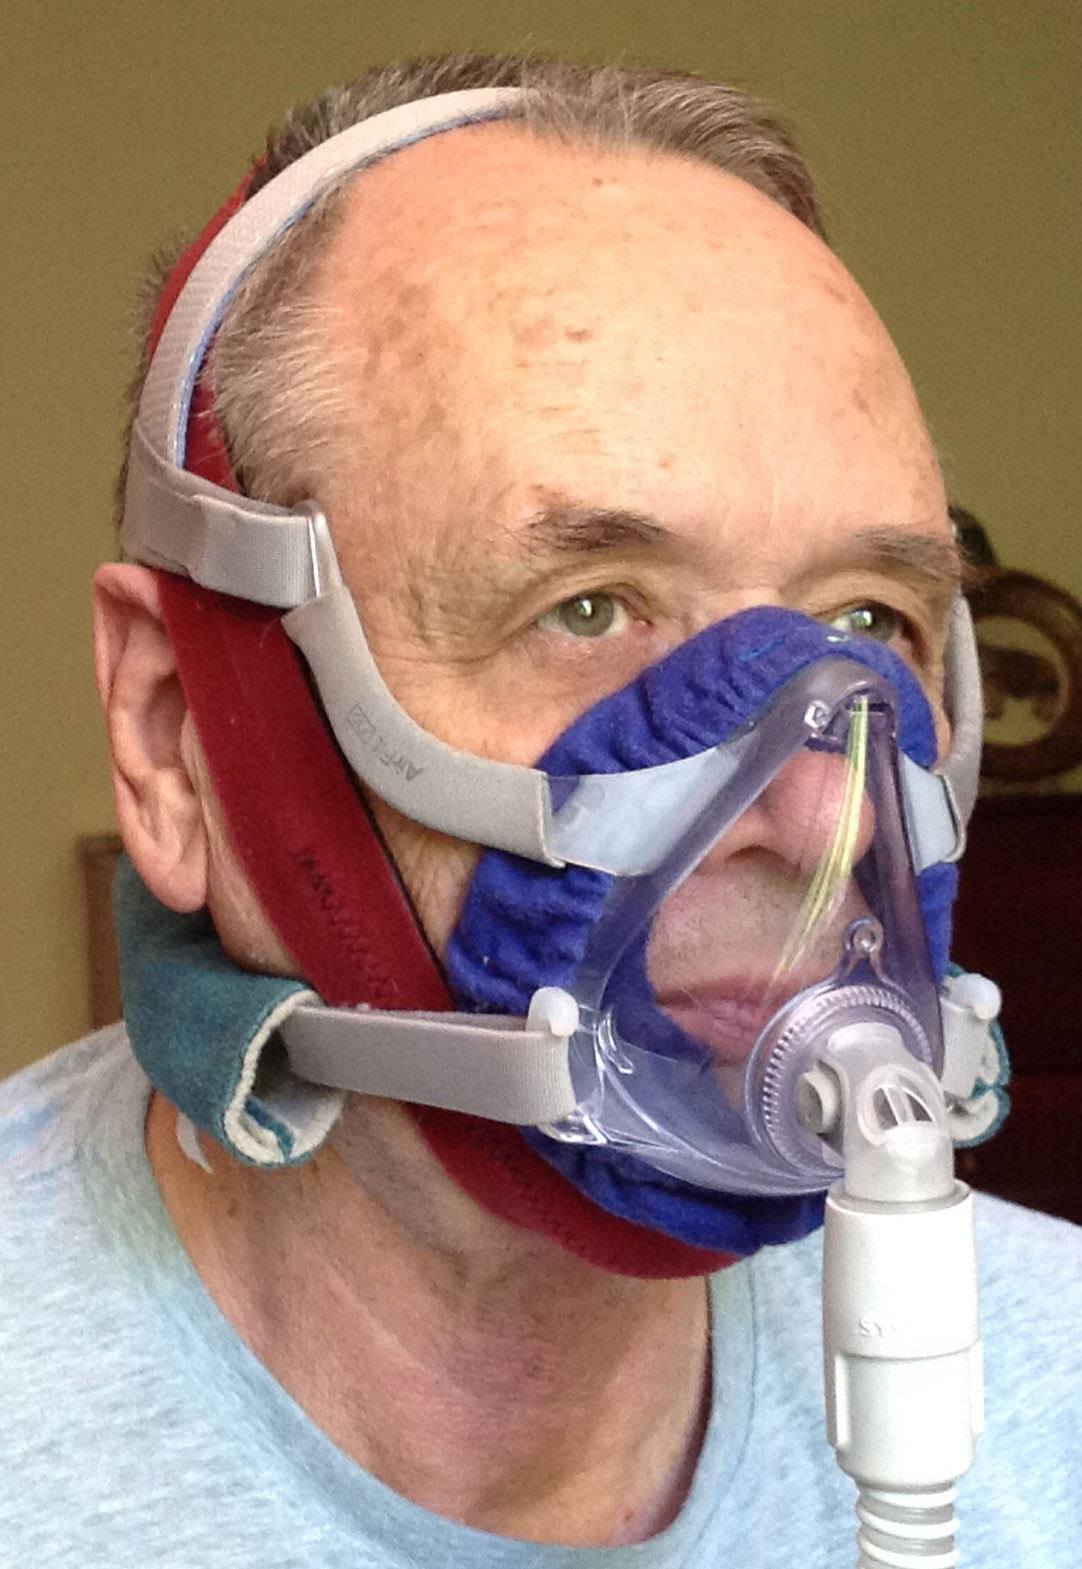 chin-strap-with-mask-cropped.jpg